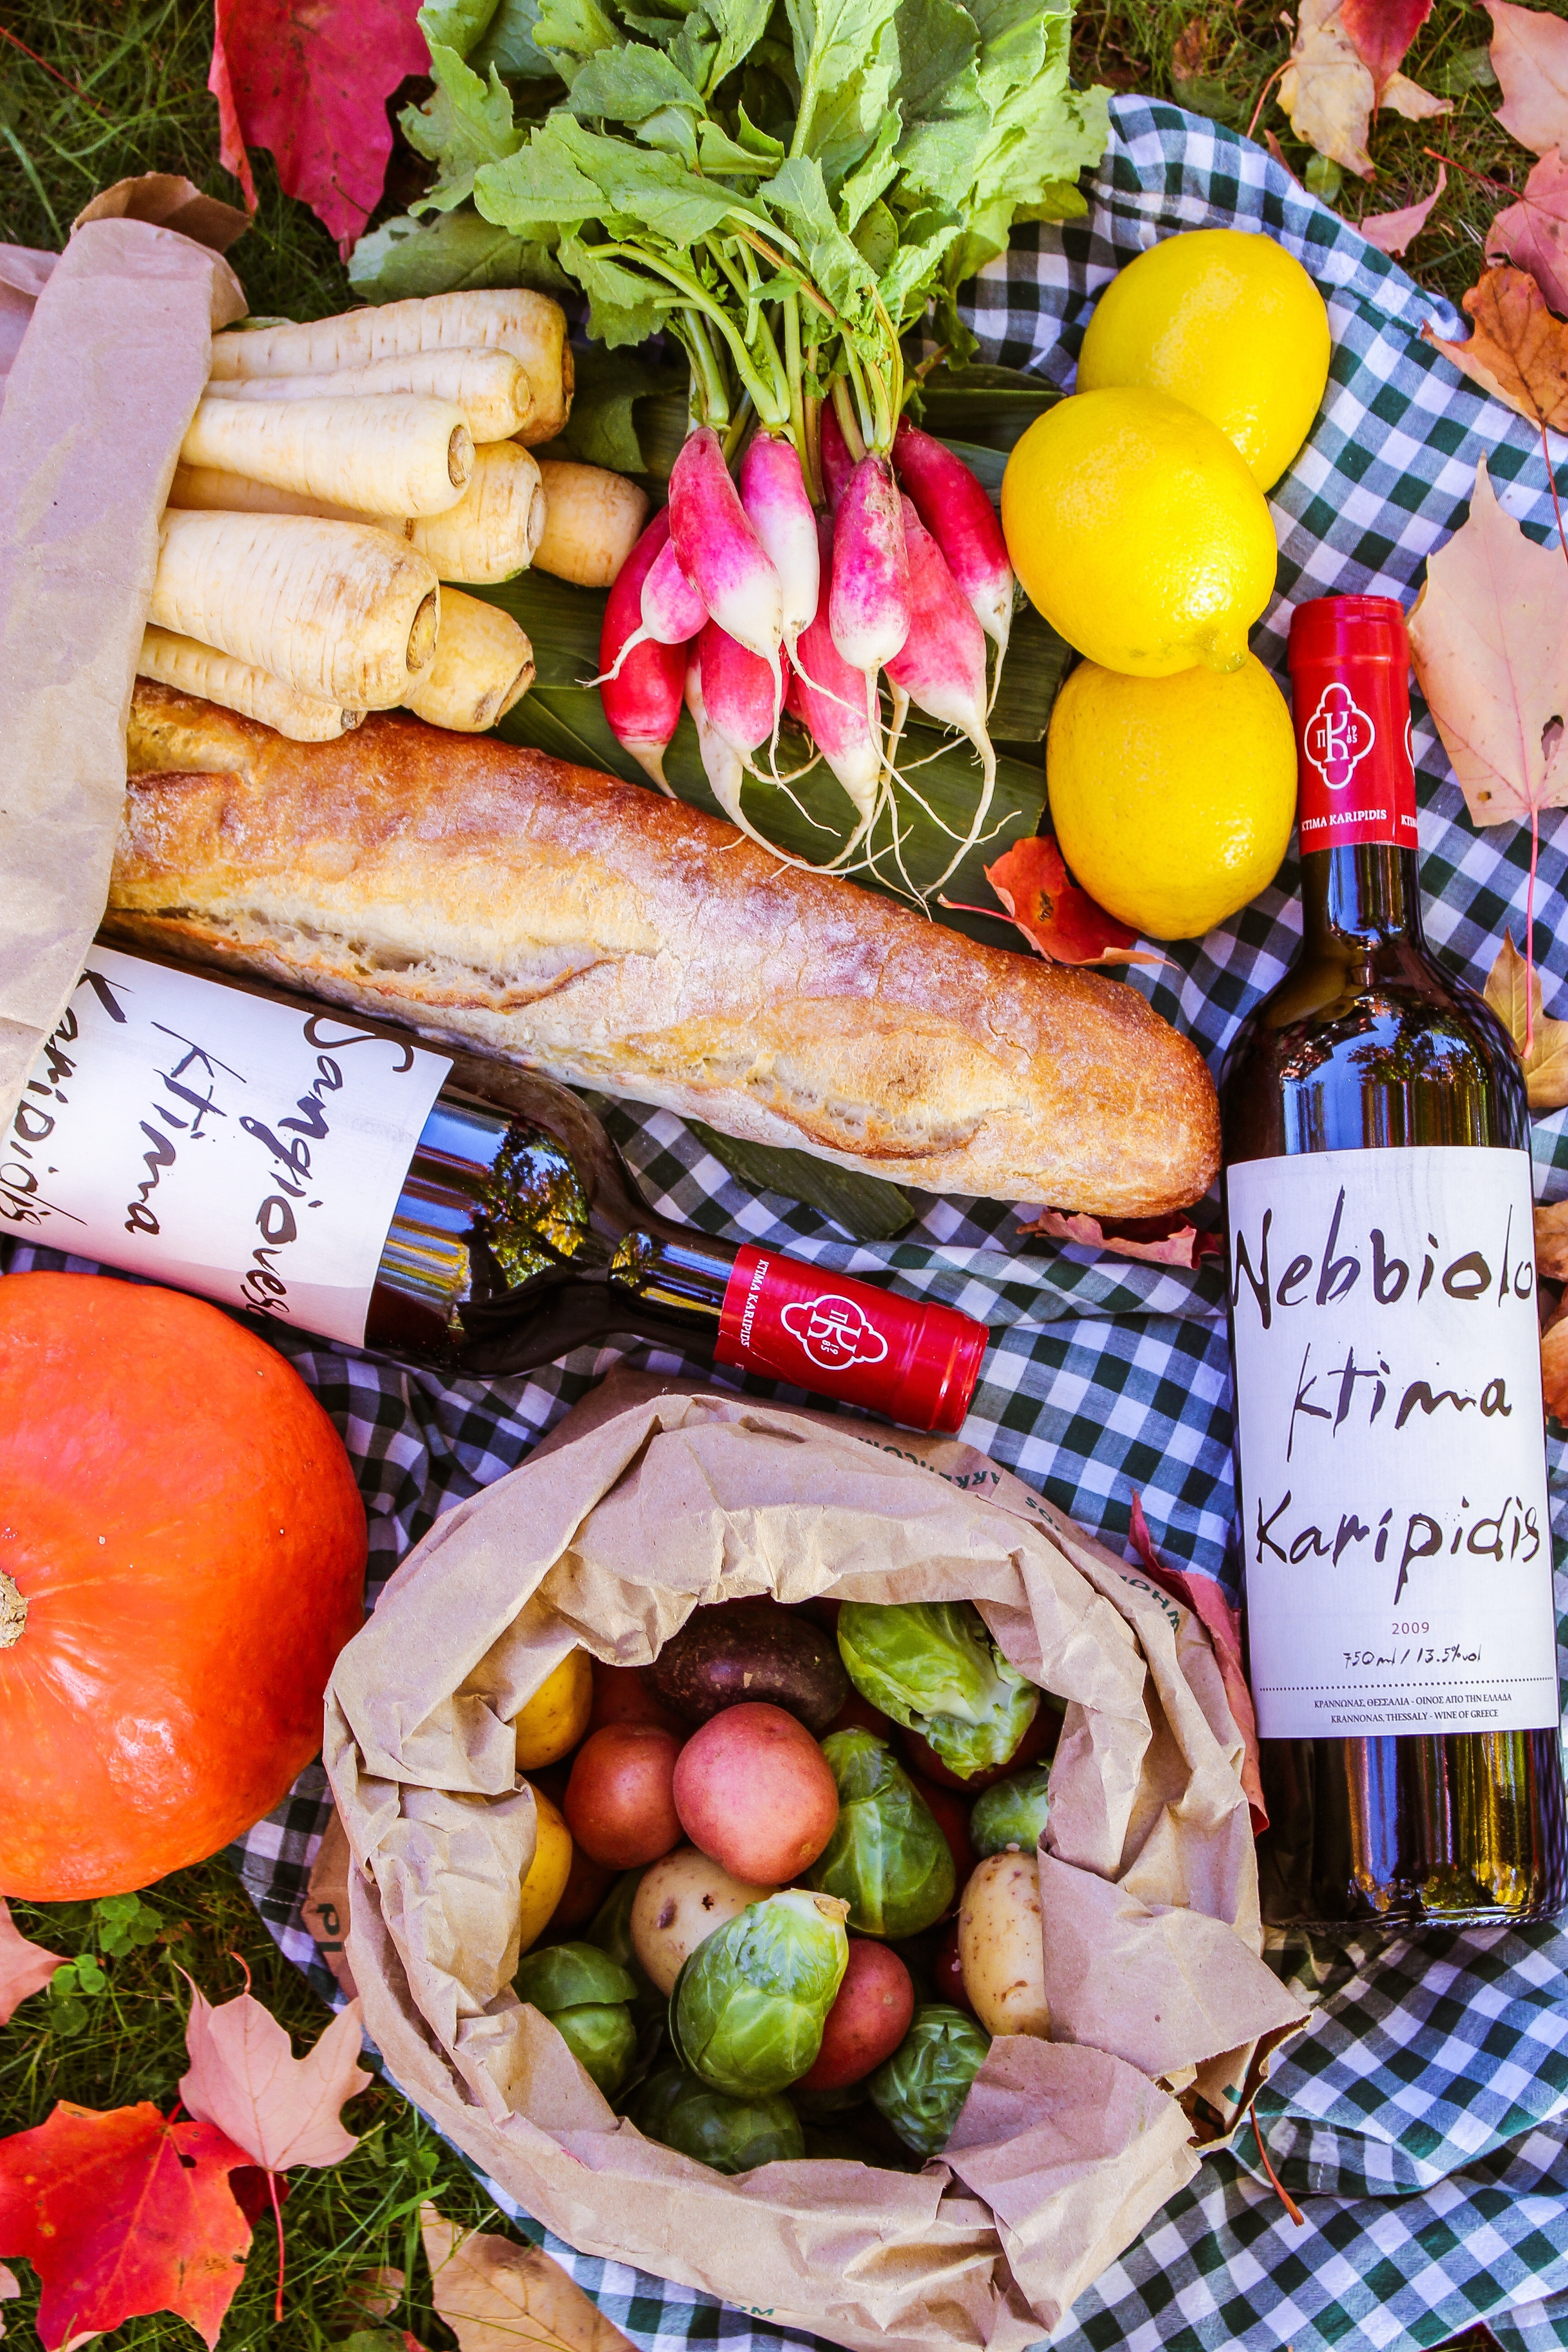 Fruit, vegetables, bread and wine laid out on a picnic blanket